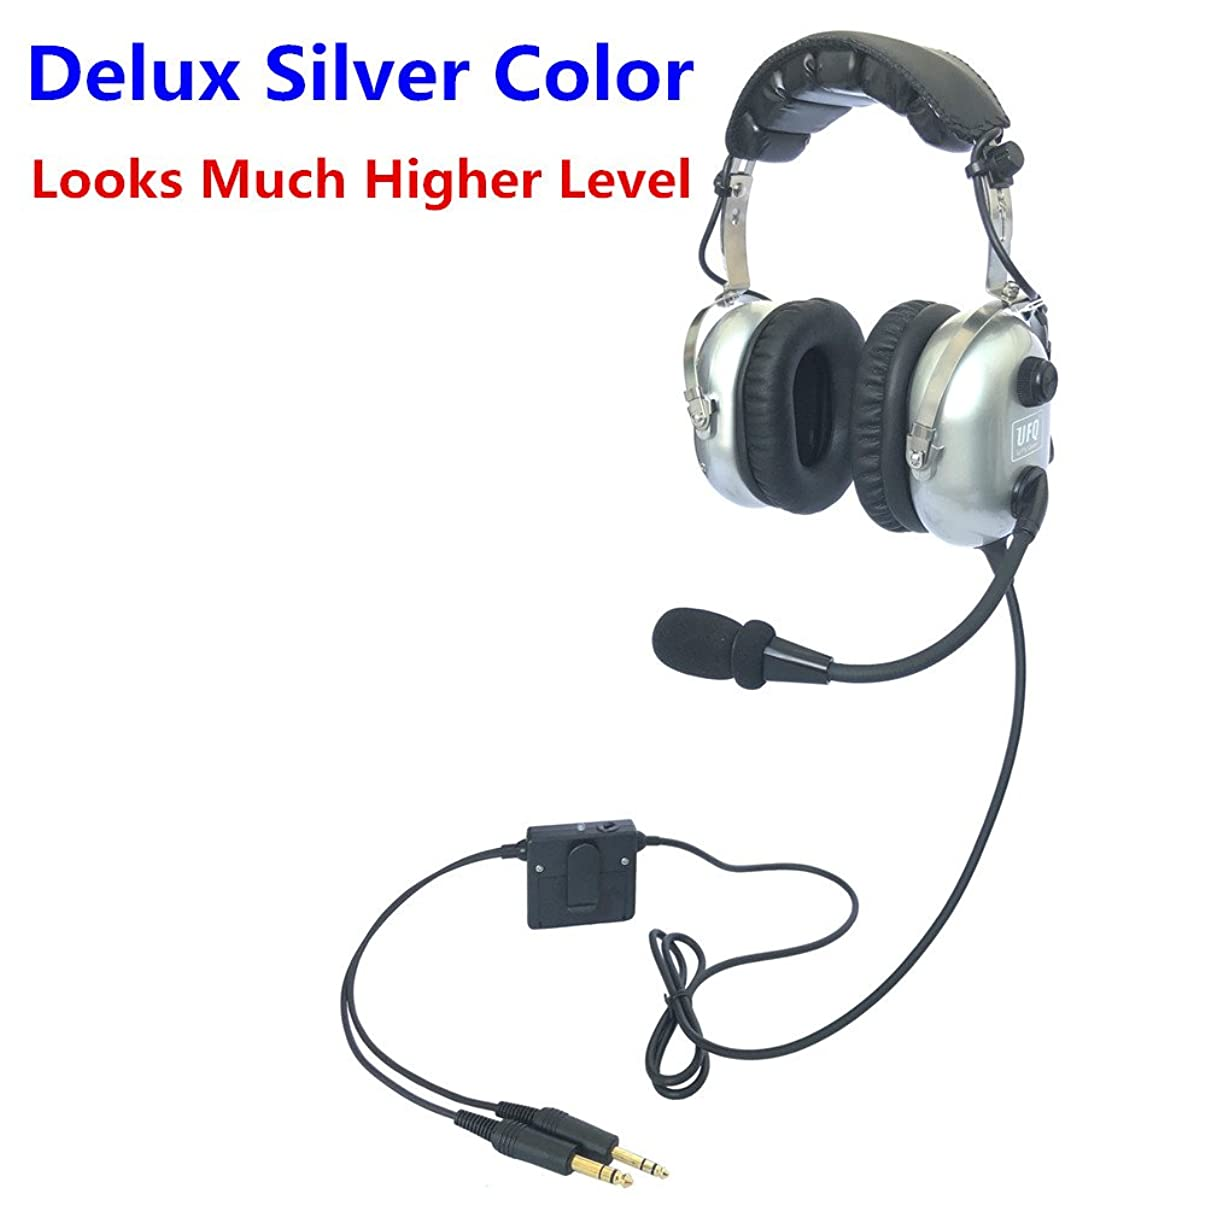 UFQ A28 Delux Silver Color Great ANR Aviation Headset Active Noise Reduction-Compare with Rugged Air RA950 BUT UFQ A28 with Mp3 Input Bose Grade Hi-Fi Sound for Music and Free with a Headset Bag